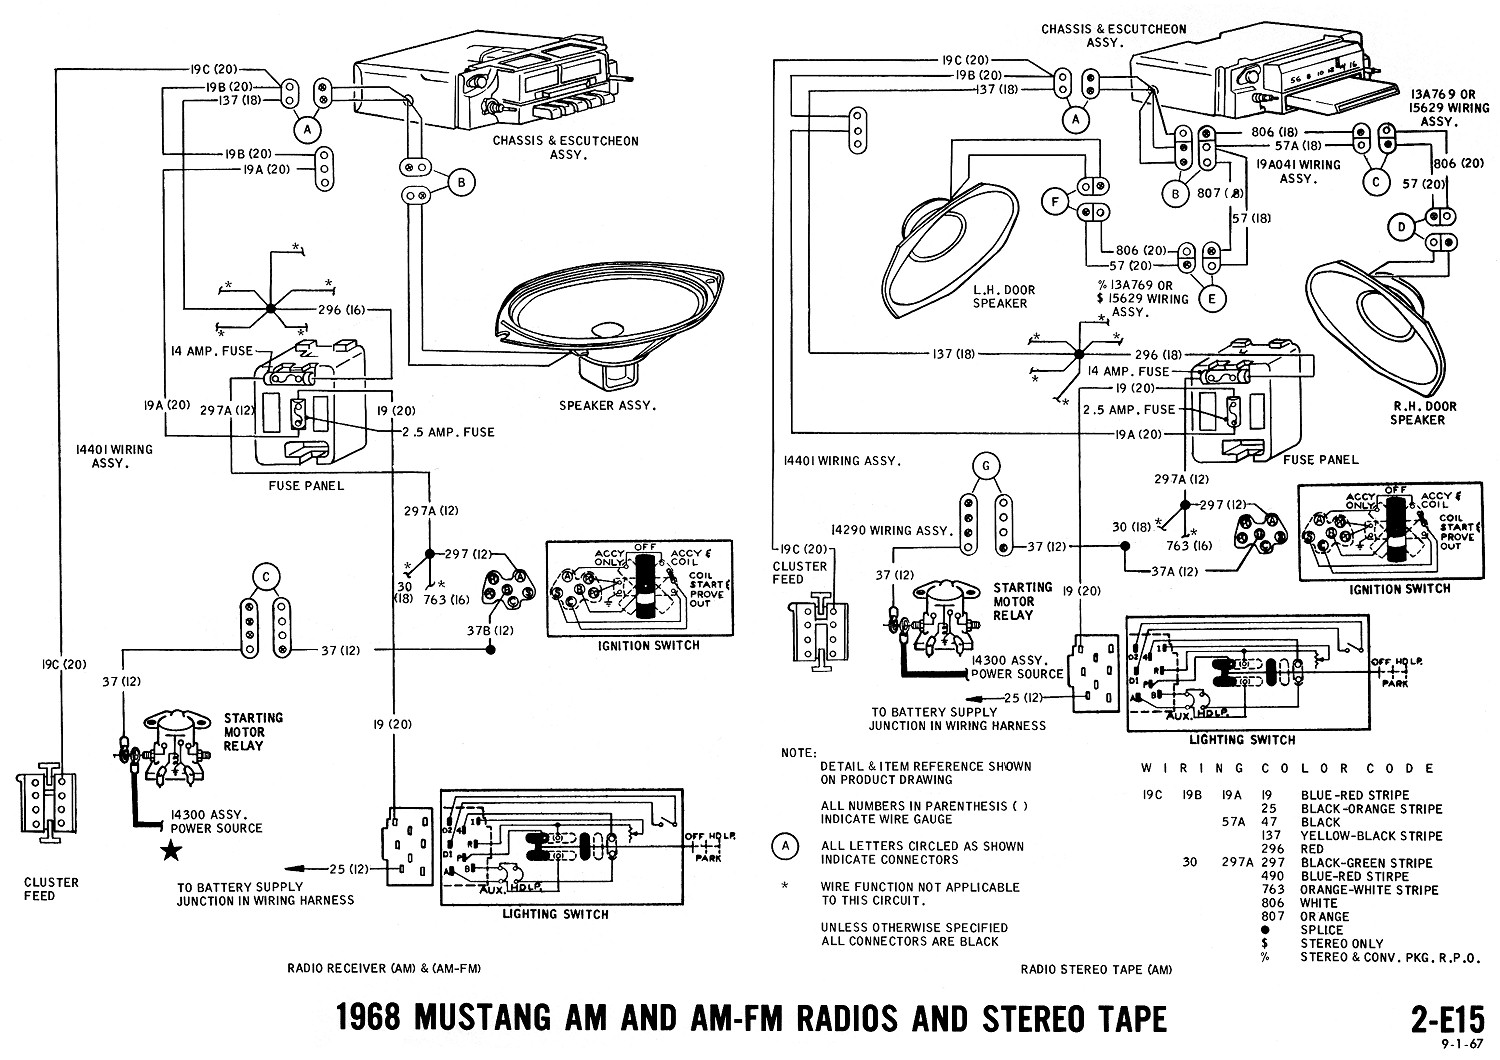 1968 Mustang Wiring Diagrams moreover Chevy Steering Column Diagram besides Service Trailer Brake System On 2007 Chevy Silverado 2500 together with 95 Chevy Silverado Wiring Diagram together with Corvette Efe Thermal Control Vacuum Switch 1980 1981. on chevy classic wiring diagram